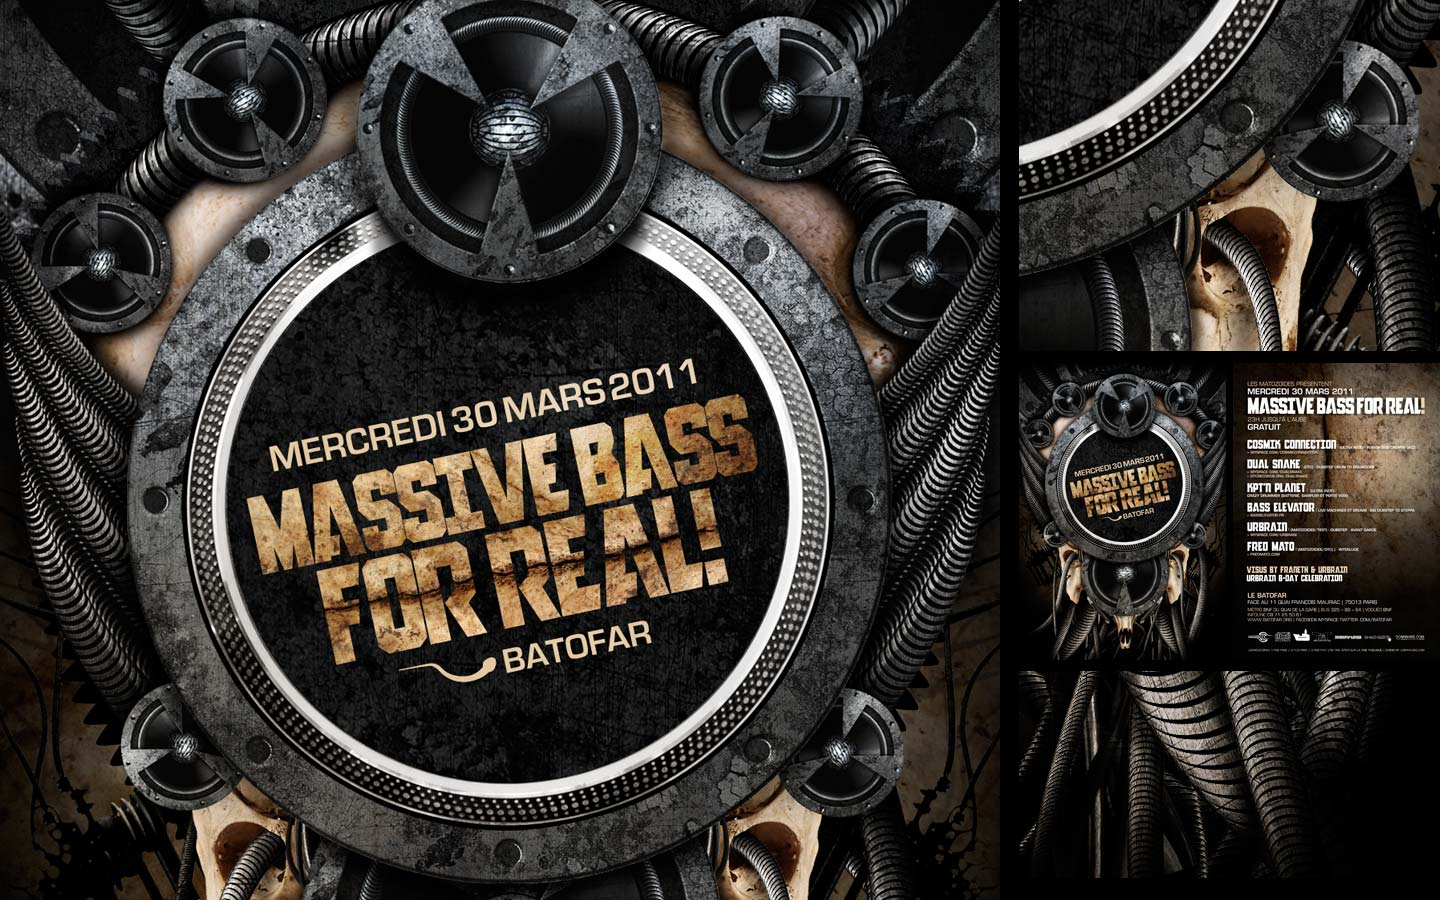 Massive Bass For Real - Laurent Lemoigne - Donanubis - Don Anubis - Graphic Design - Flyer - Matozoides - Batofar - Paris - Art - Music - Electronic - Party - Event - Flyer - Poster - Industrial - Dark - Speaker - Turntable - Mk2 - Bass - Electric - Factory - Skull - Bones - Biomechanic - Biomechanik - Biomechanical - Biomechanoid - Giger - Deviantart - Daily Deviation - DD - Alternative - Underground - Geneva - Switzerland - Drum and Bass - d'n'b - Dubstep - Hard Drum - Cosmik Connection / Ultra Indé - Dual Snake / DTC - KPT'N Planet / Ultra Indé - Bass Elevator - Urbrain / Matozoides / DTC - Fred Mato / Matozoides / DTC Records / 4real - Metal - Hard - Rock - Death - Band - Illustration